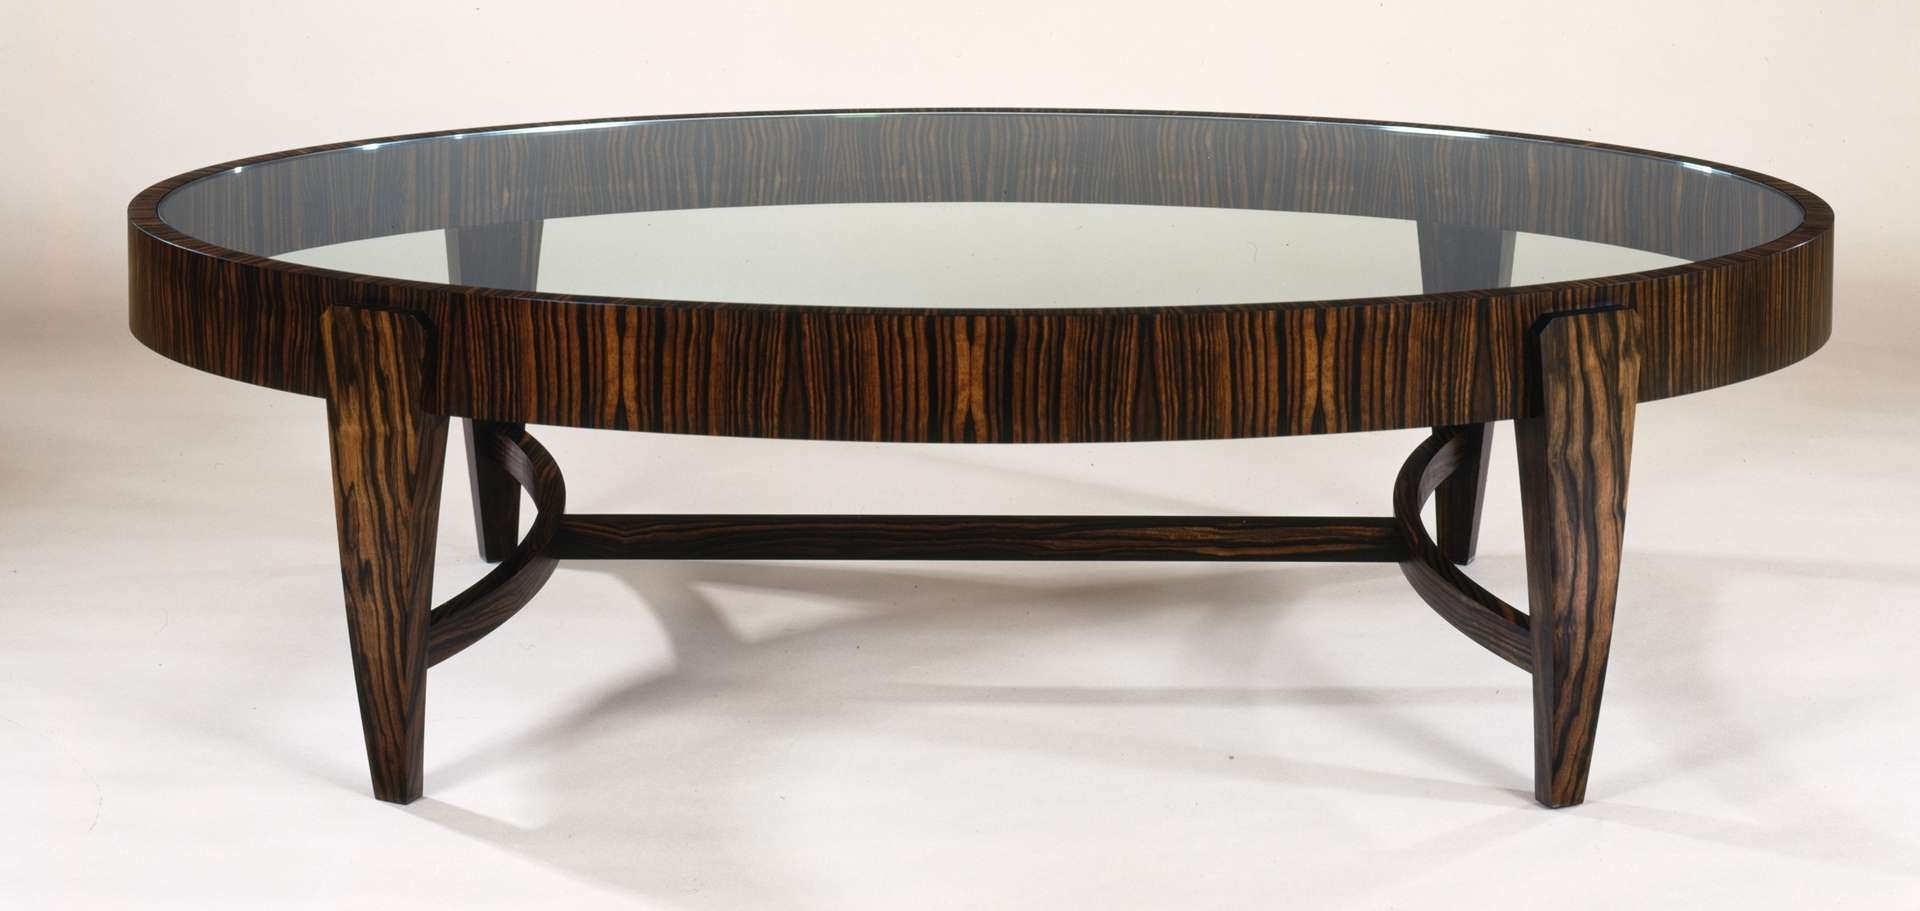 Oval Coffee Table Contemporary Coffee Tables For Small Spaces With Well Liked Oblong Coffee Tables (View 18 of 20)